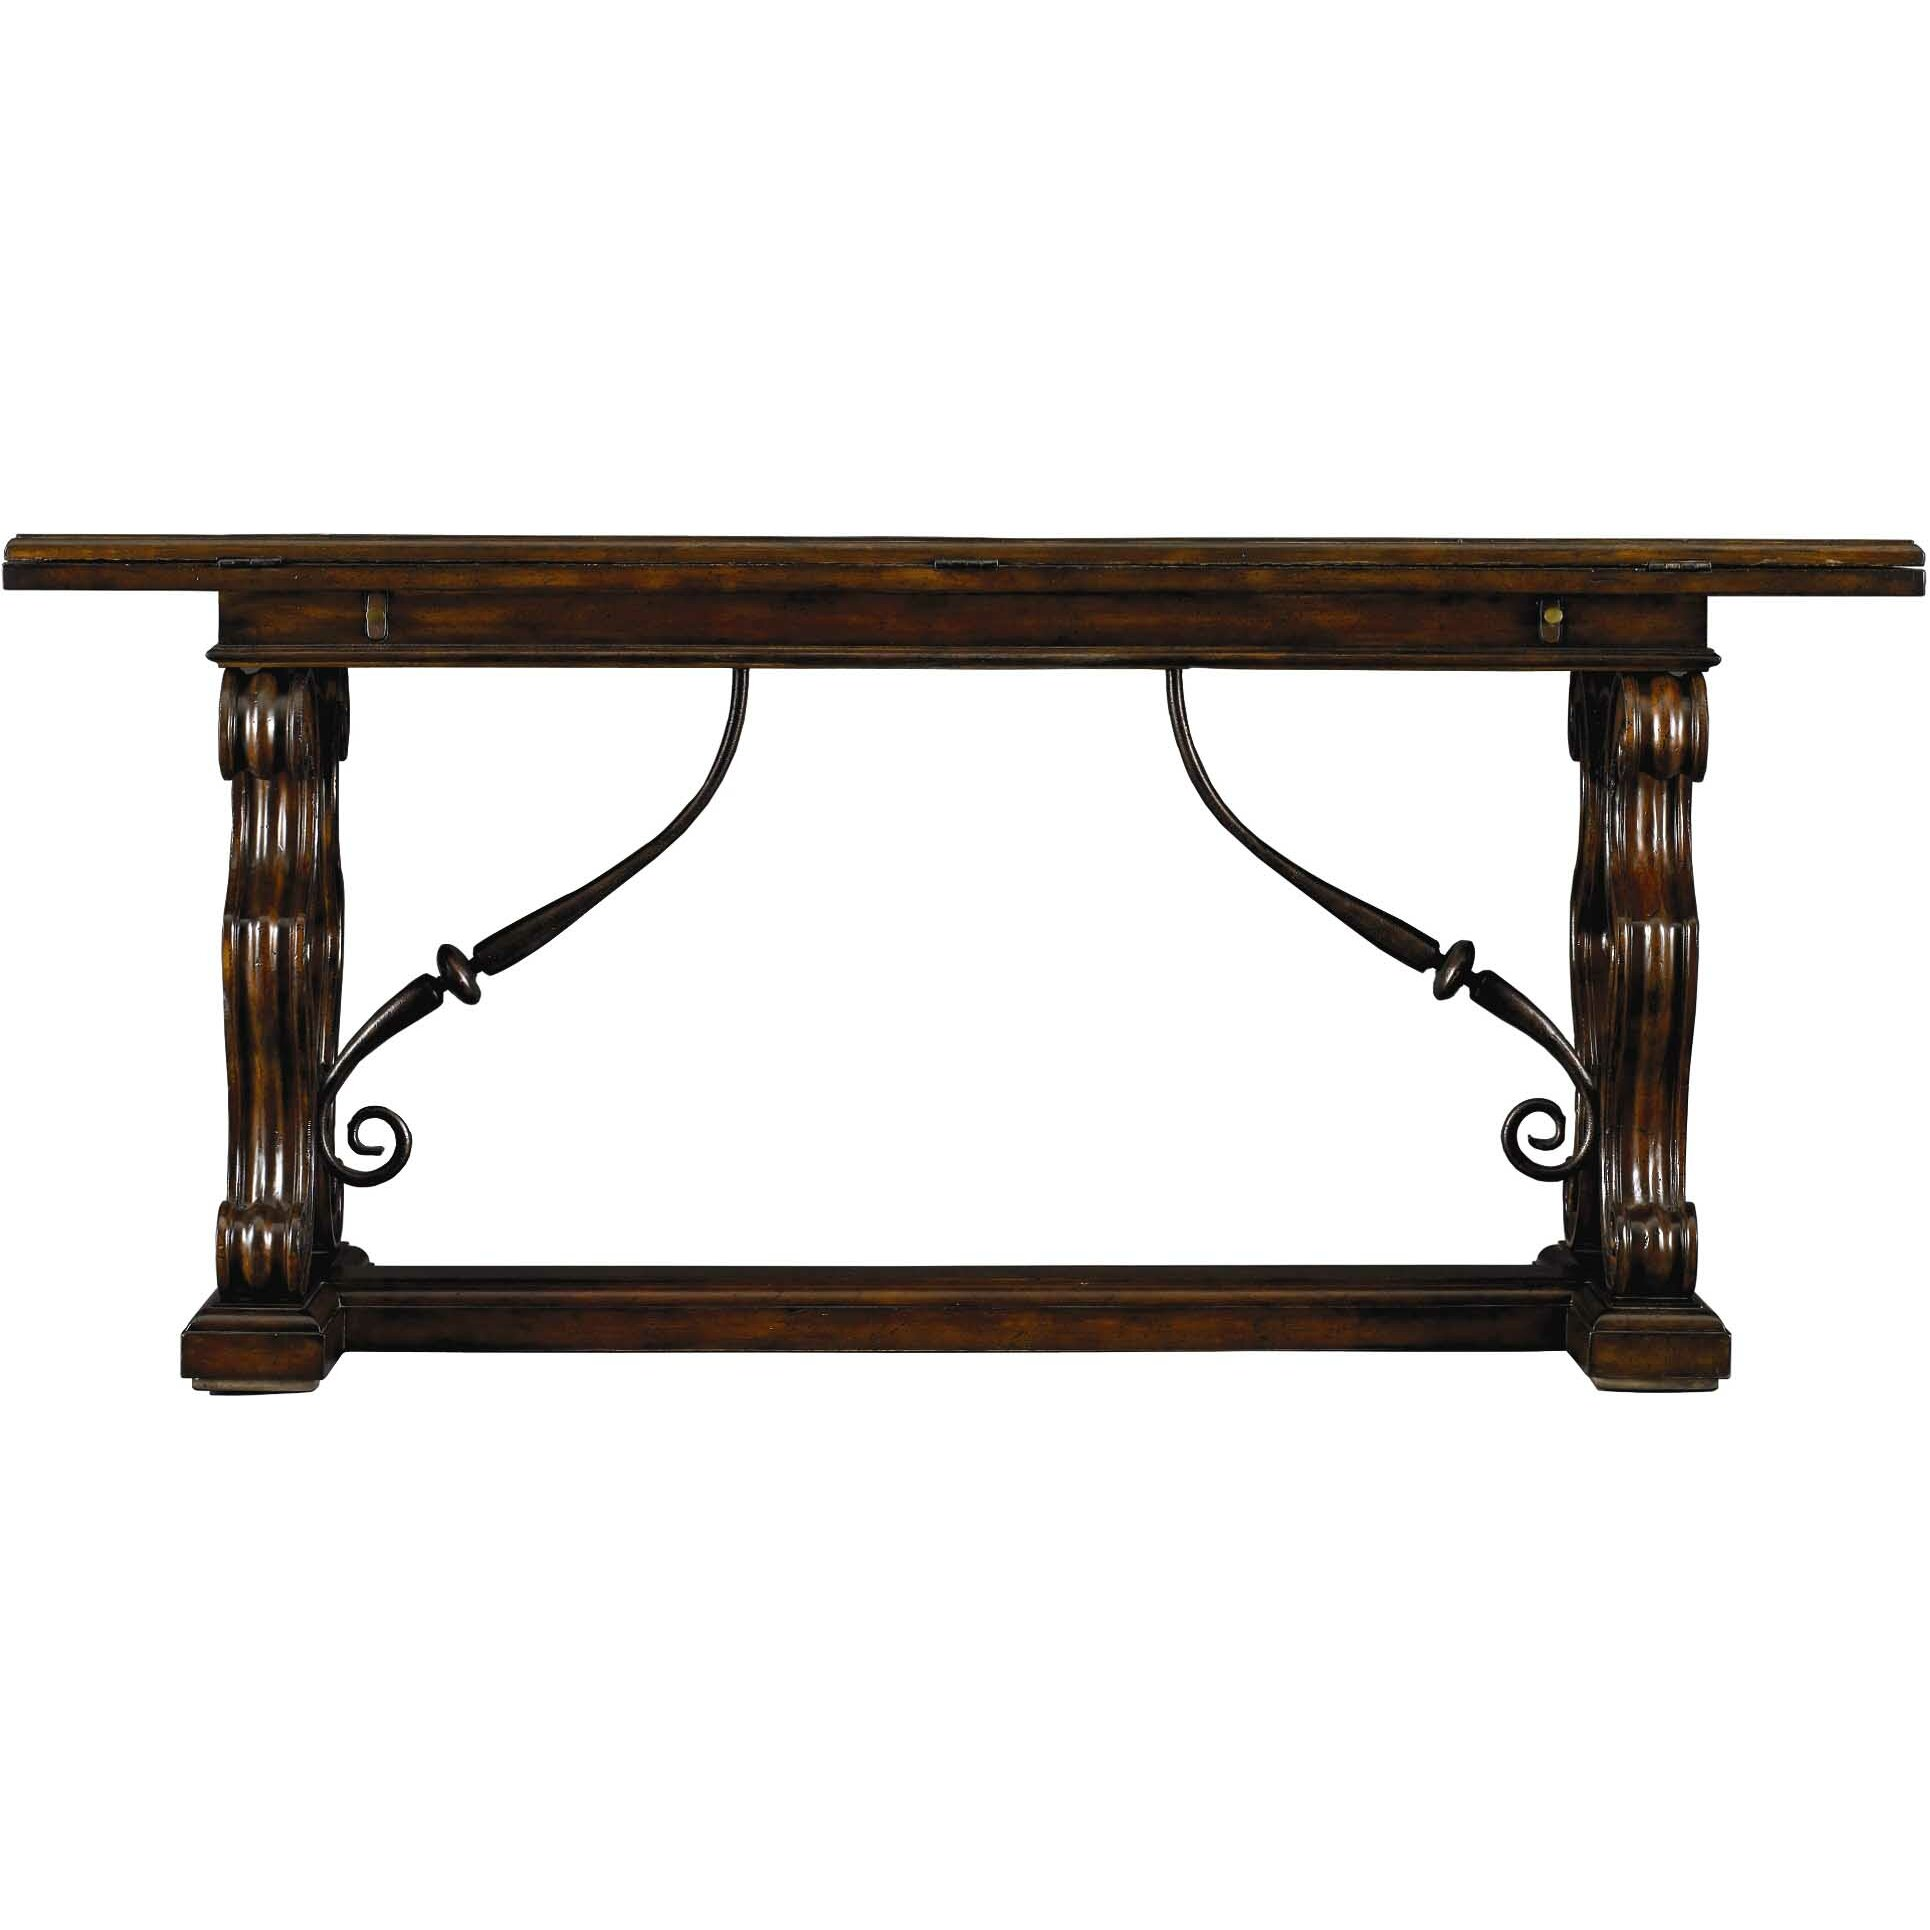 Stanley costa del sol charneira family console table for Console furniture